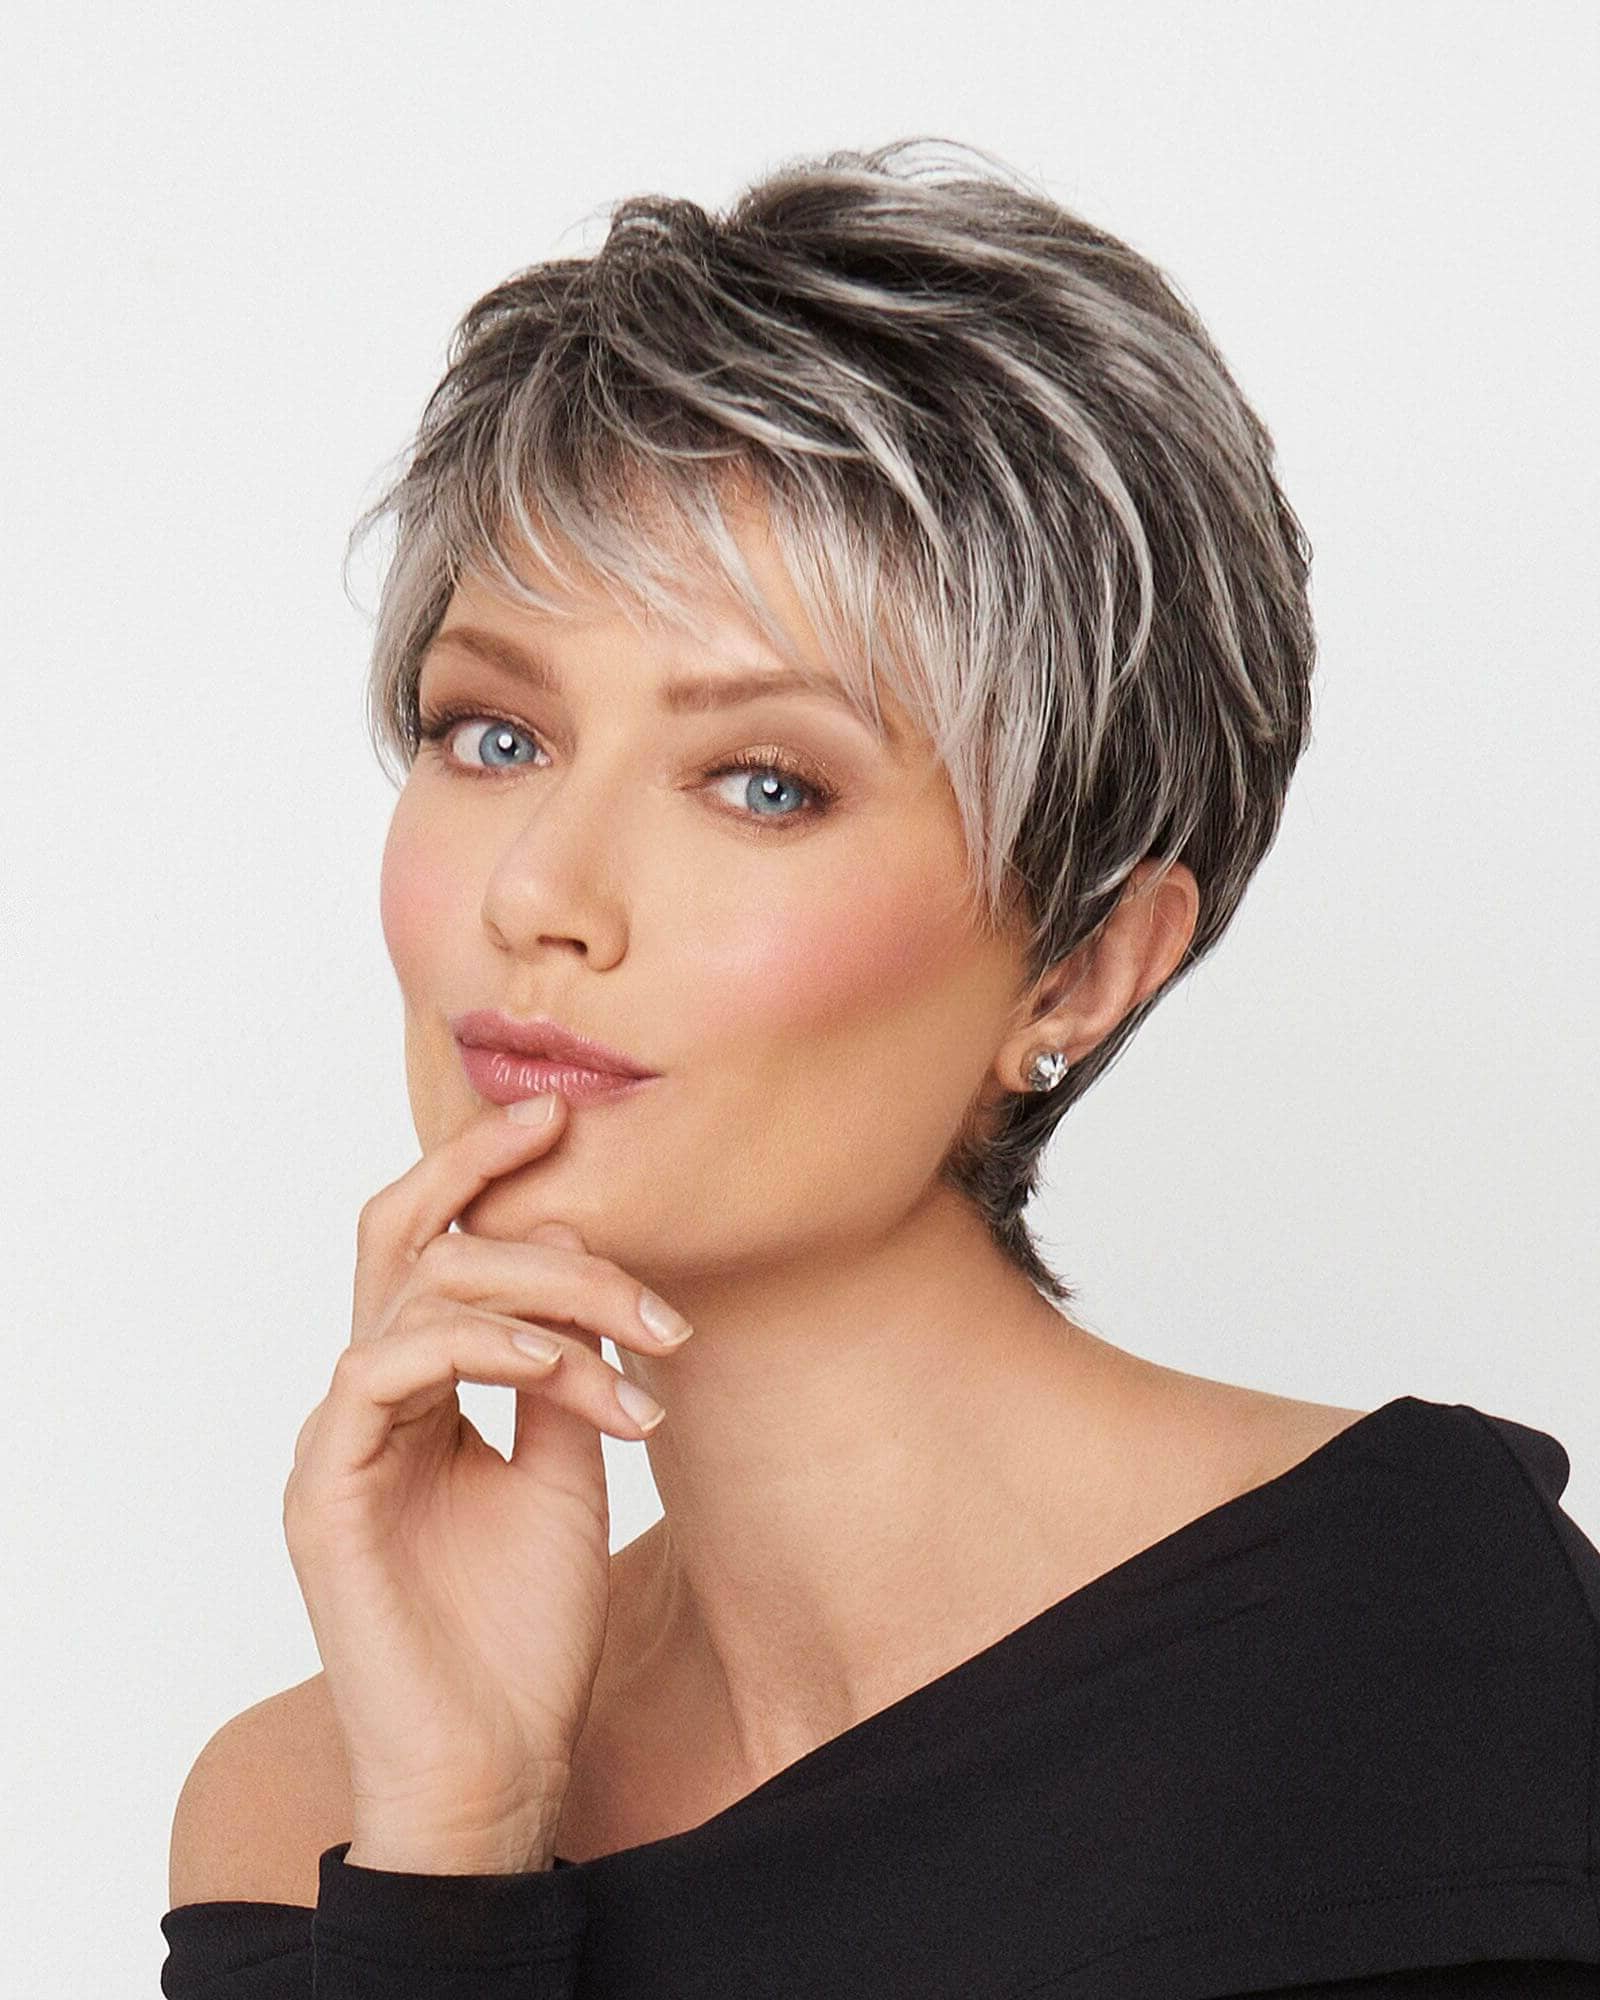 50 Pixie Haircuts You'll See Trending In 2019 Within Bold Pixie Haircuts (View 13 of 20)